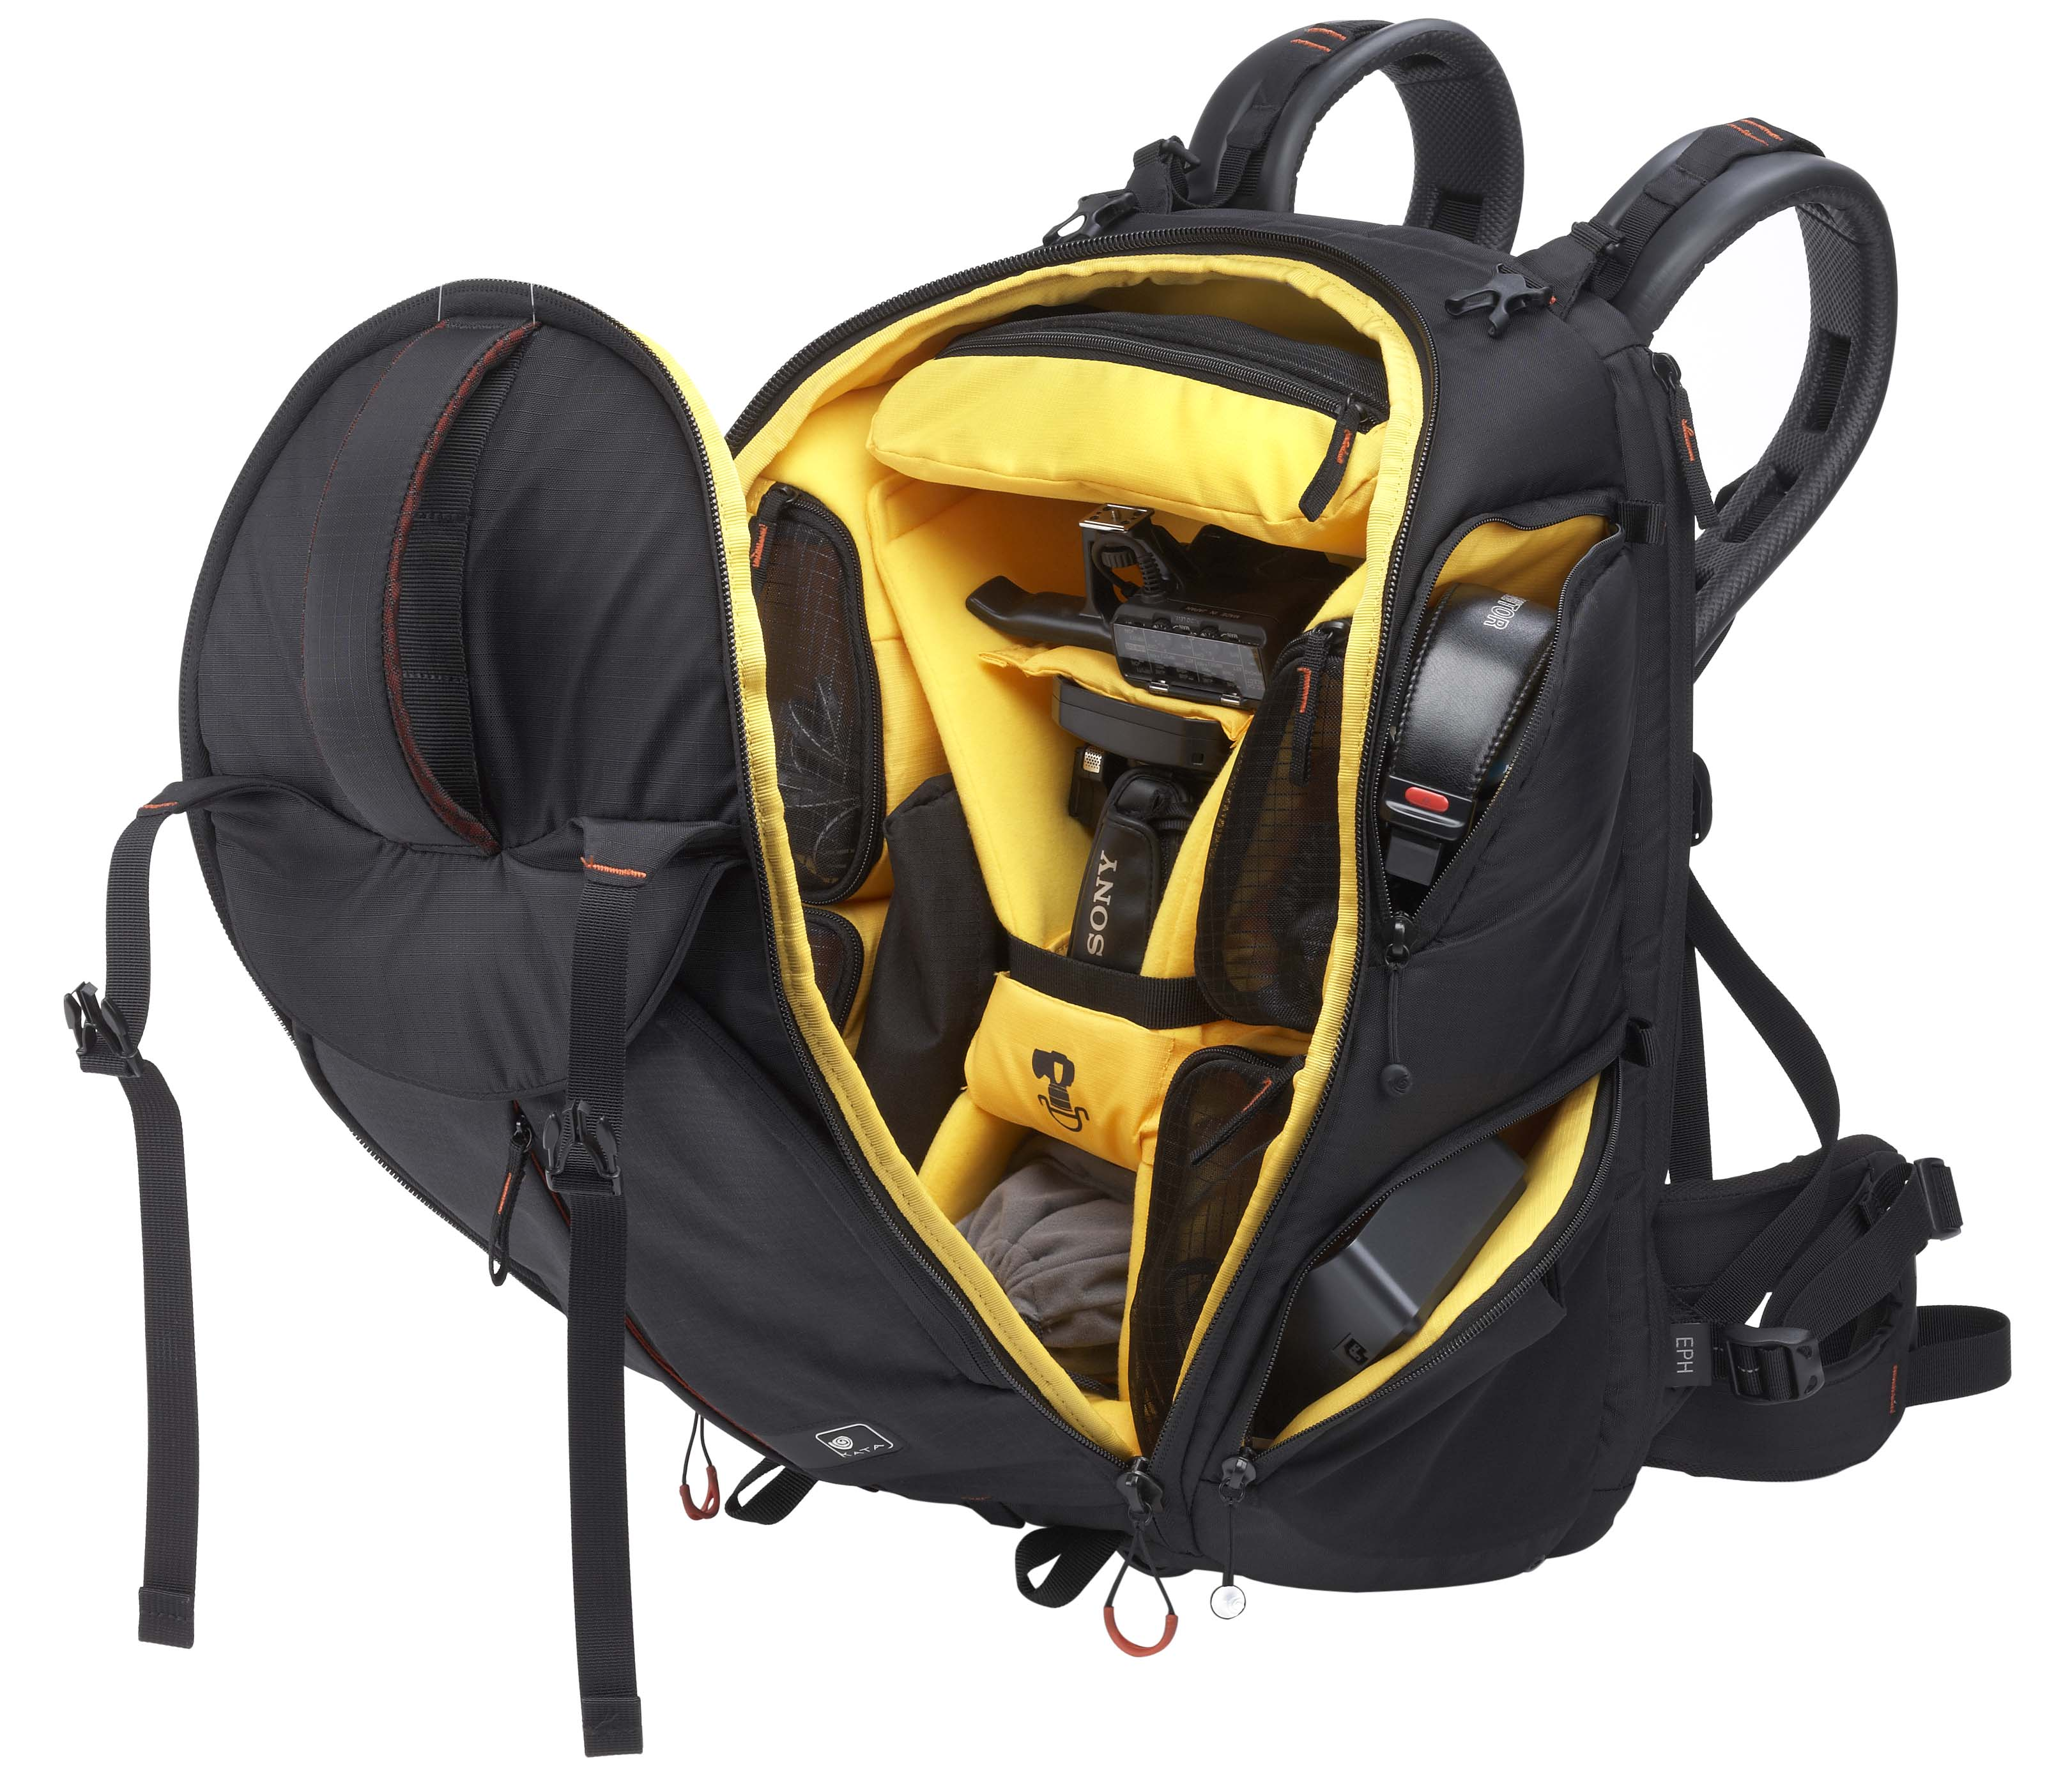 Sony Expands Line of Video Journalist Backpacks 4